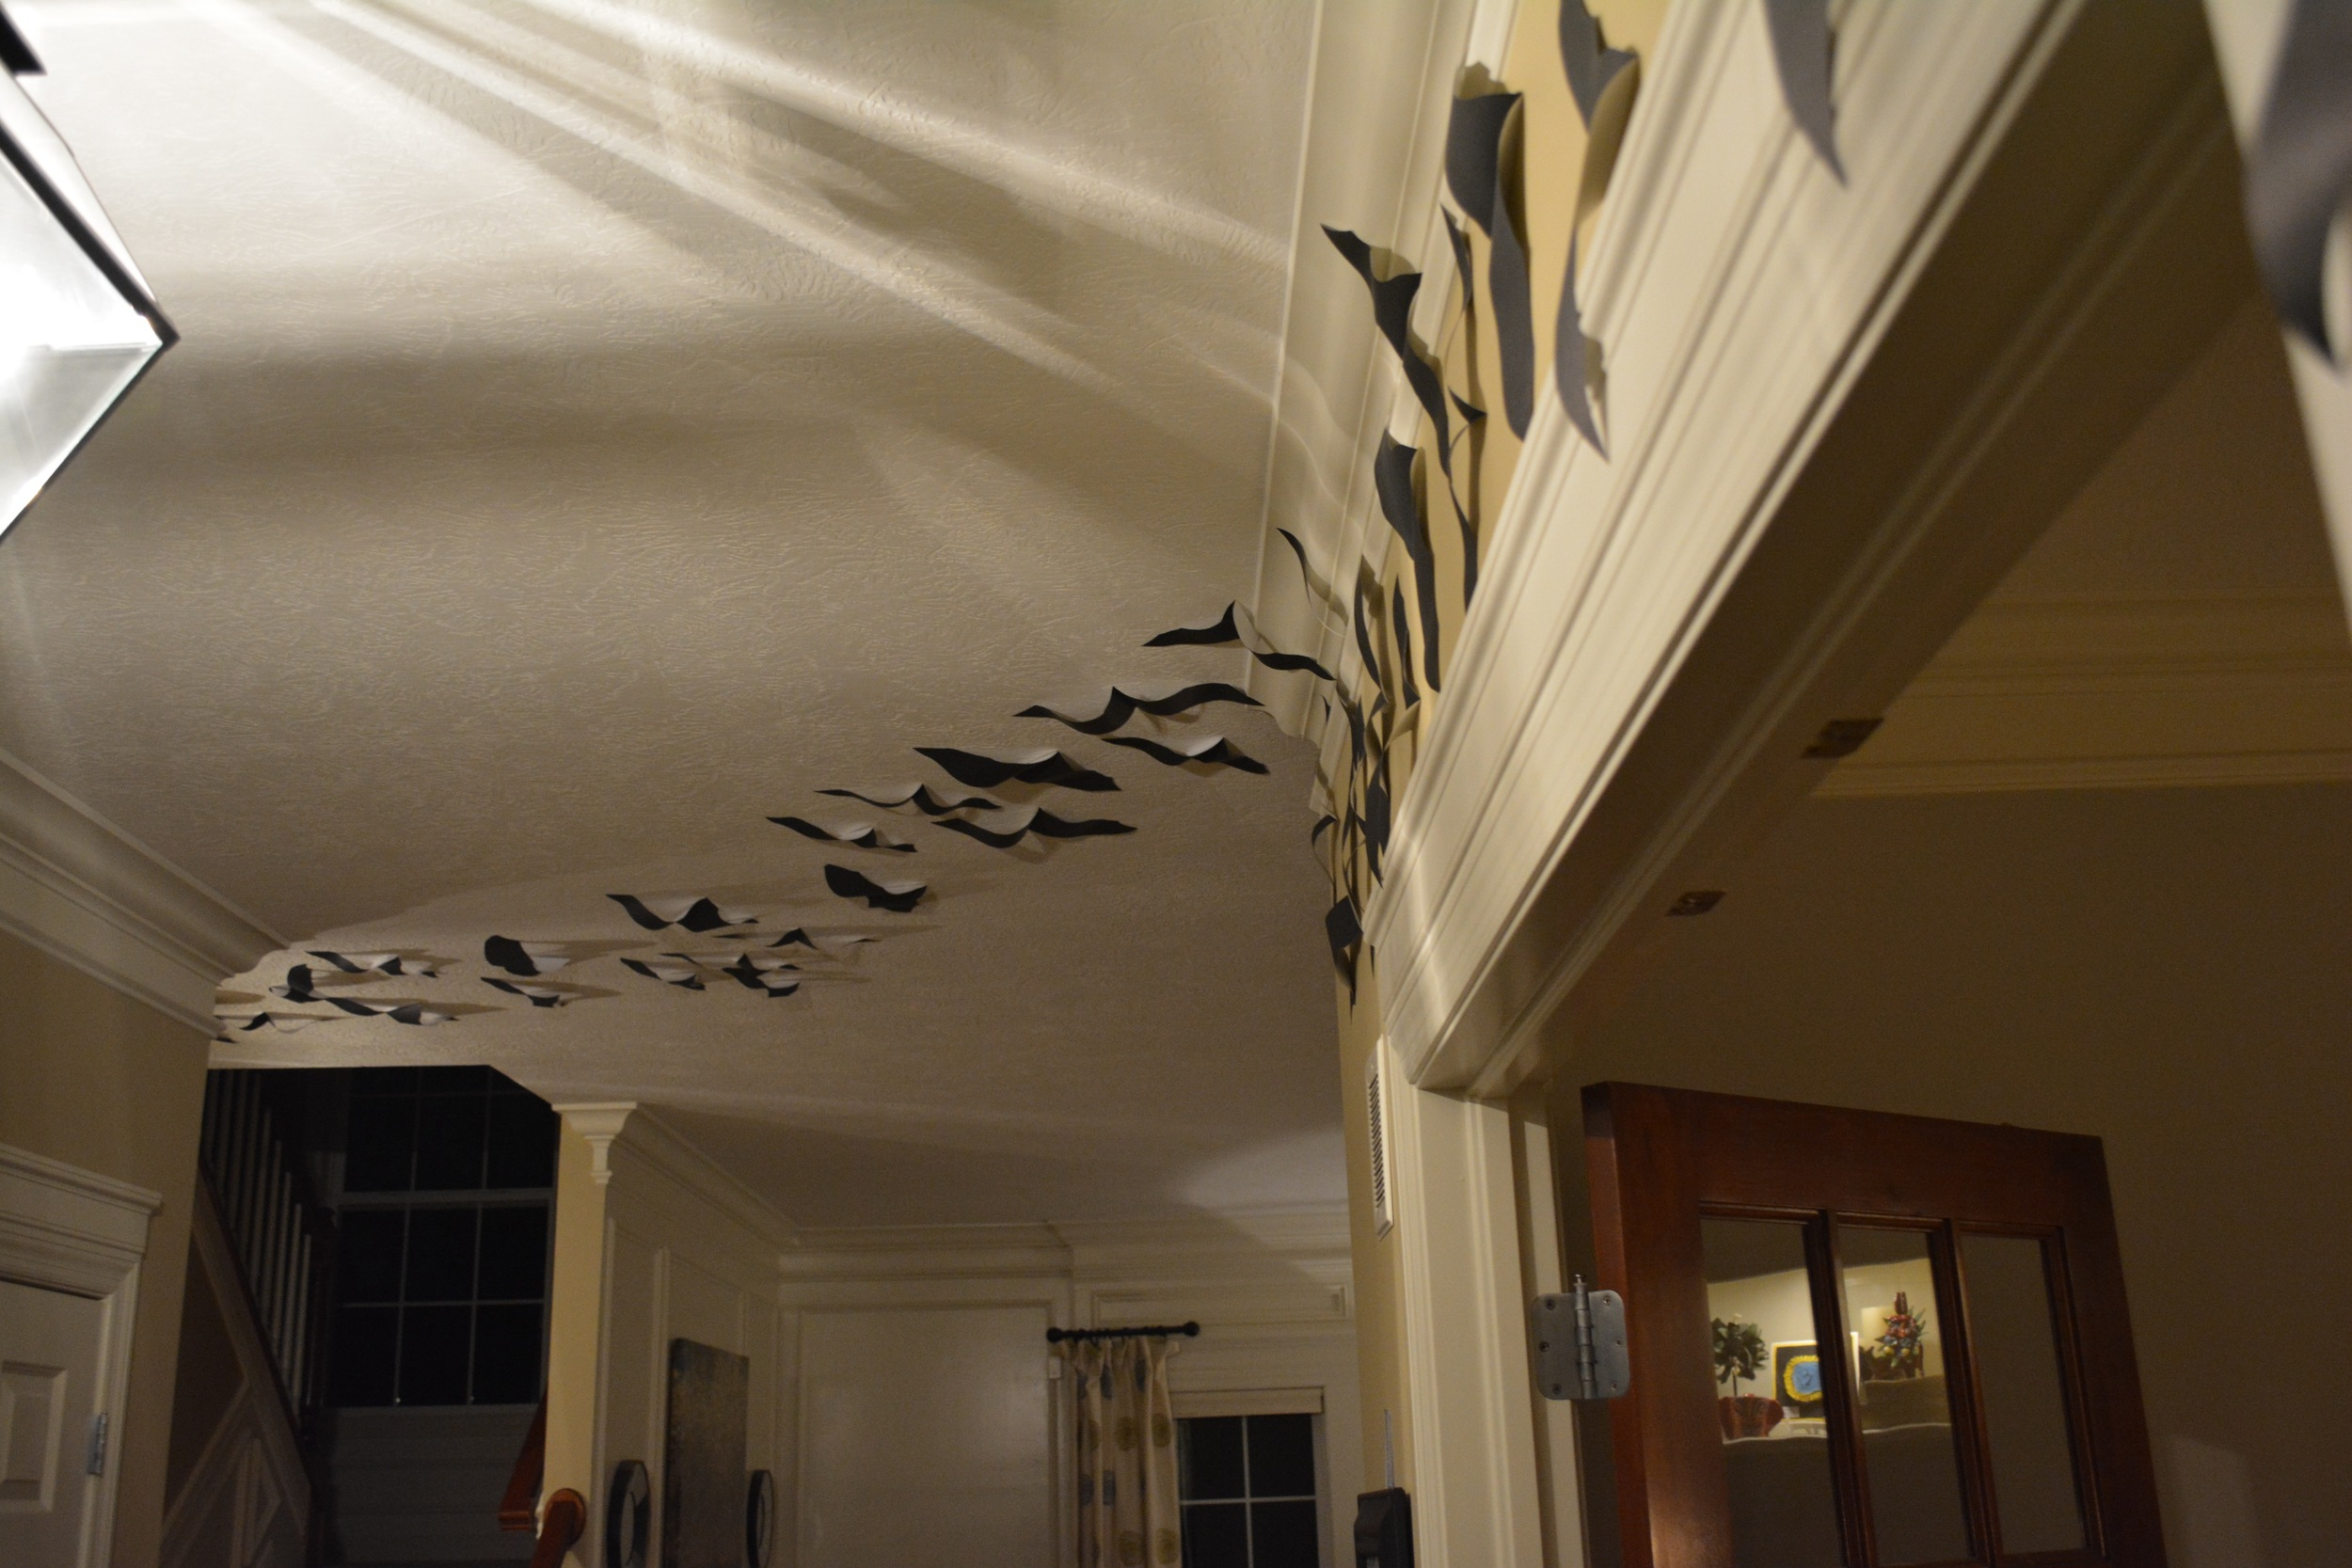 """I thought I'd share our last year's theme, we nick-named our home """"the Bat Cave"""" ~ we had a trail of bats from the entry way, clear through the hallway and into the Kitchen!"""